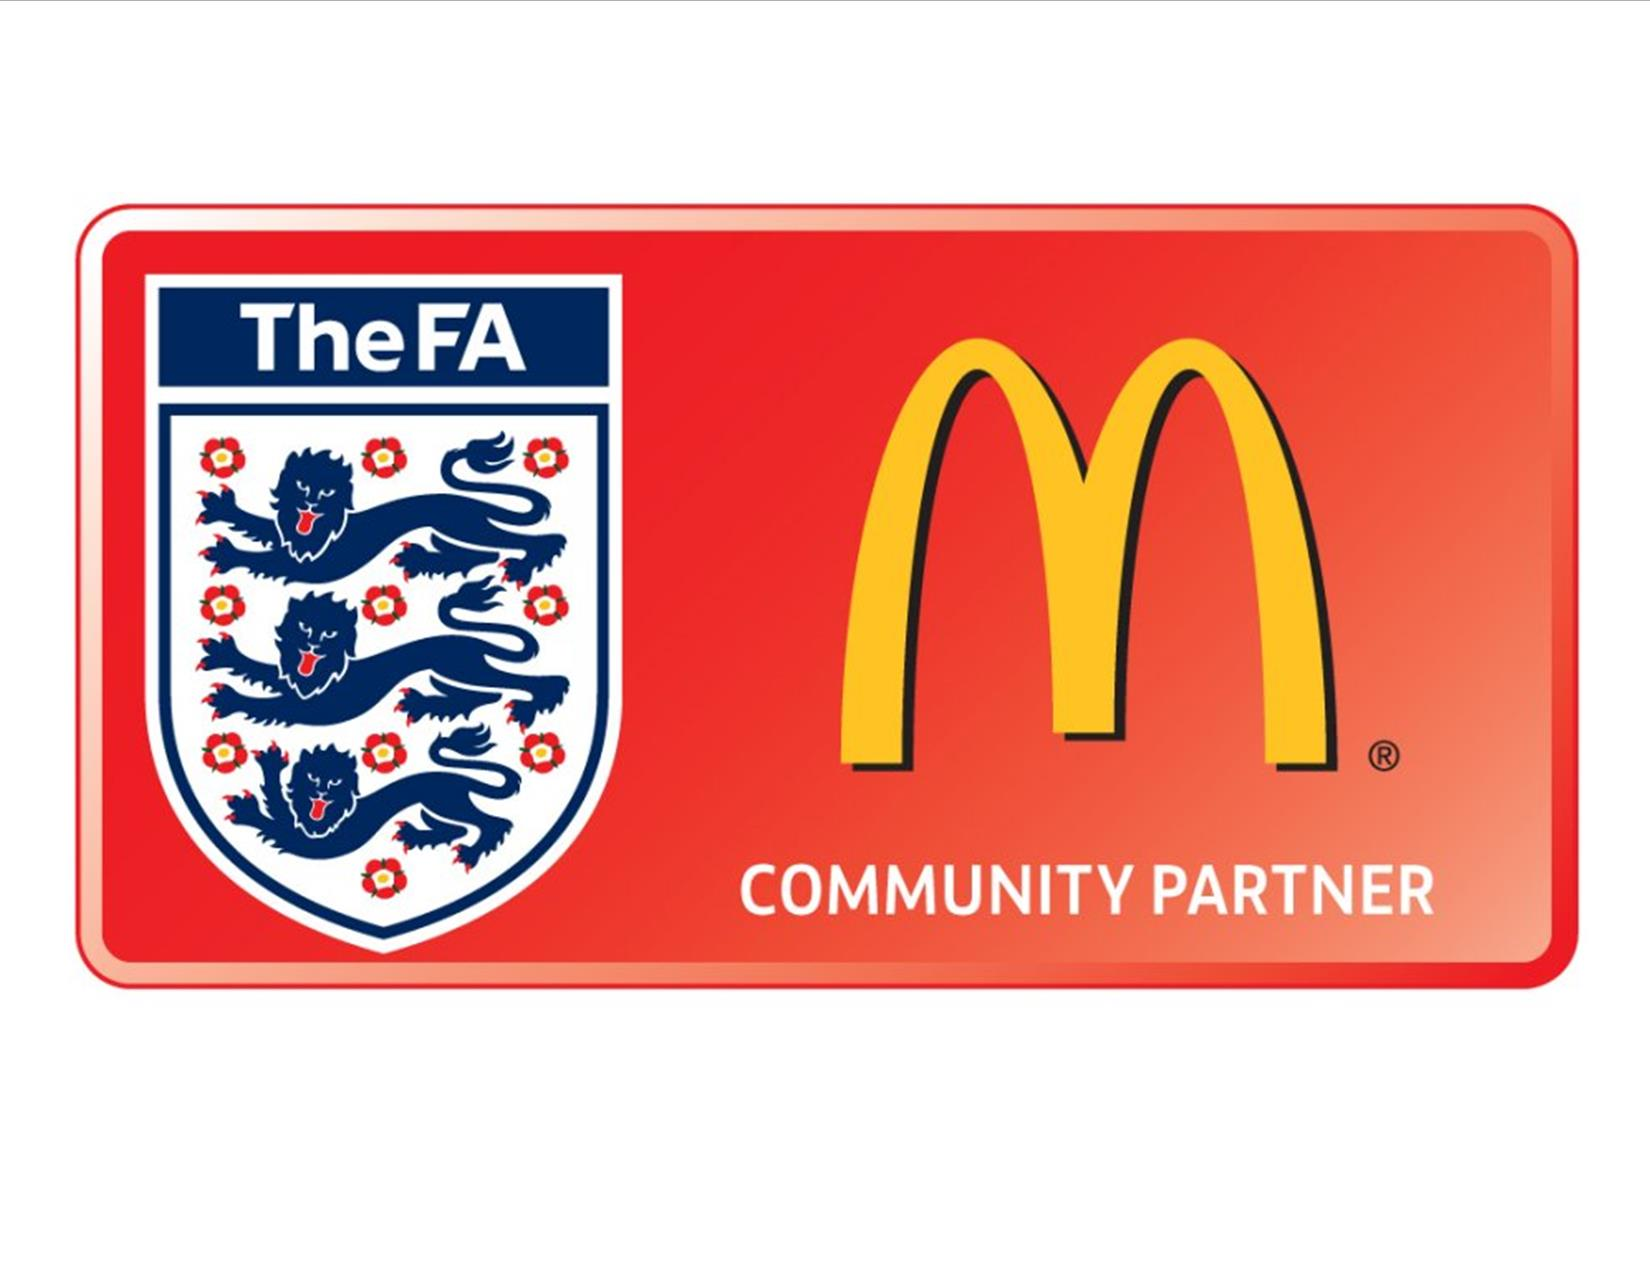 McDONALD'S BACK LIONESSES TOURNAMENT & MUCH MORE post thumbnail image